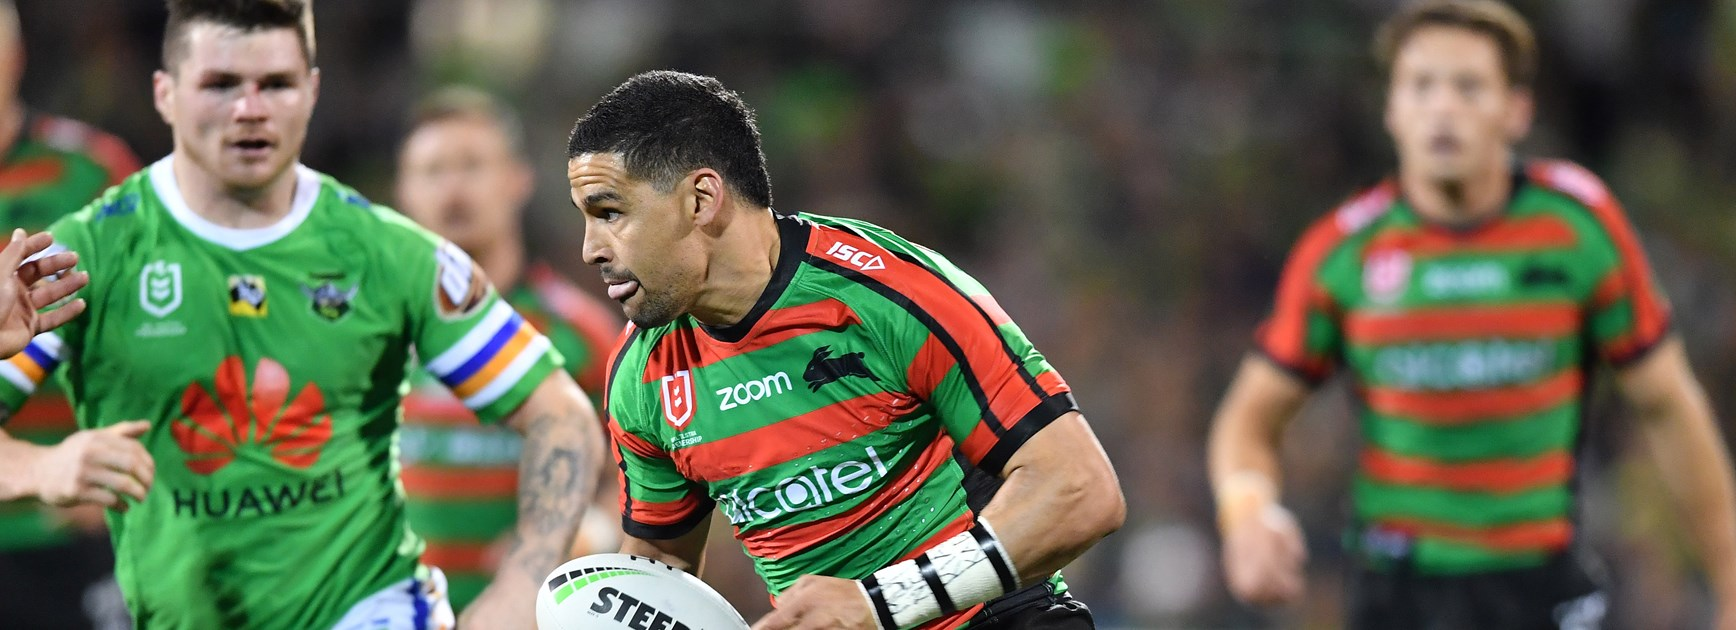 Raiders outlast Rabbitohs to book first grand final berth in 25 years